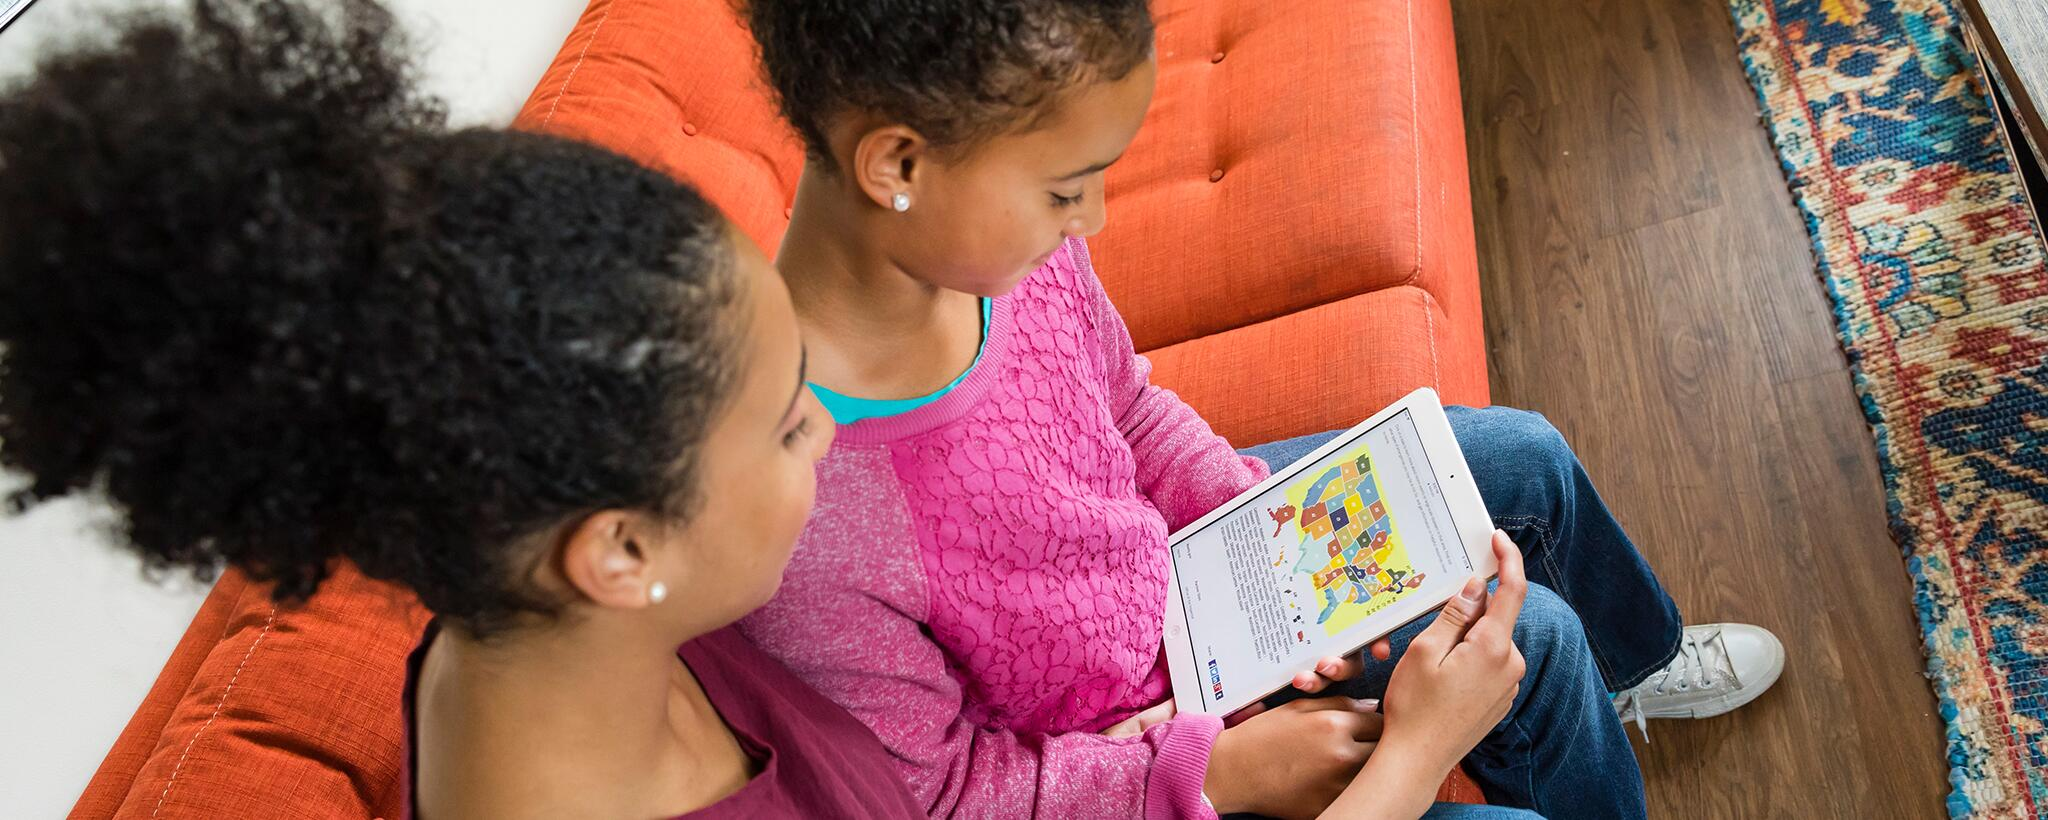 Girls play with tablet